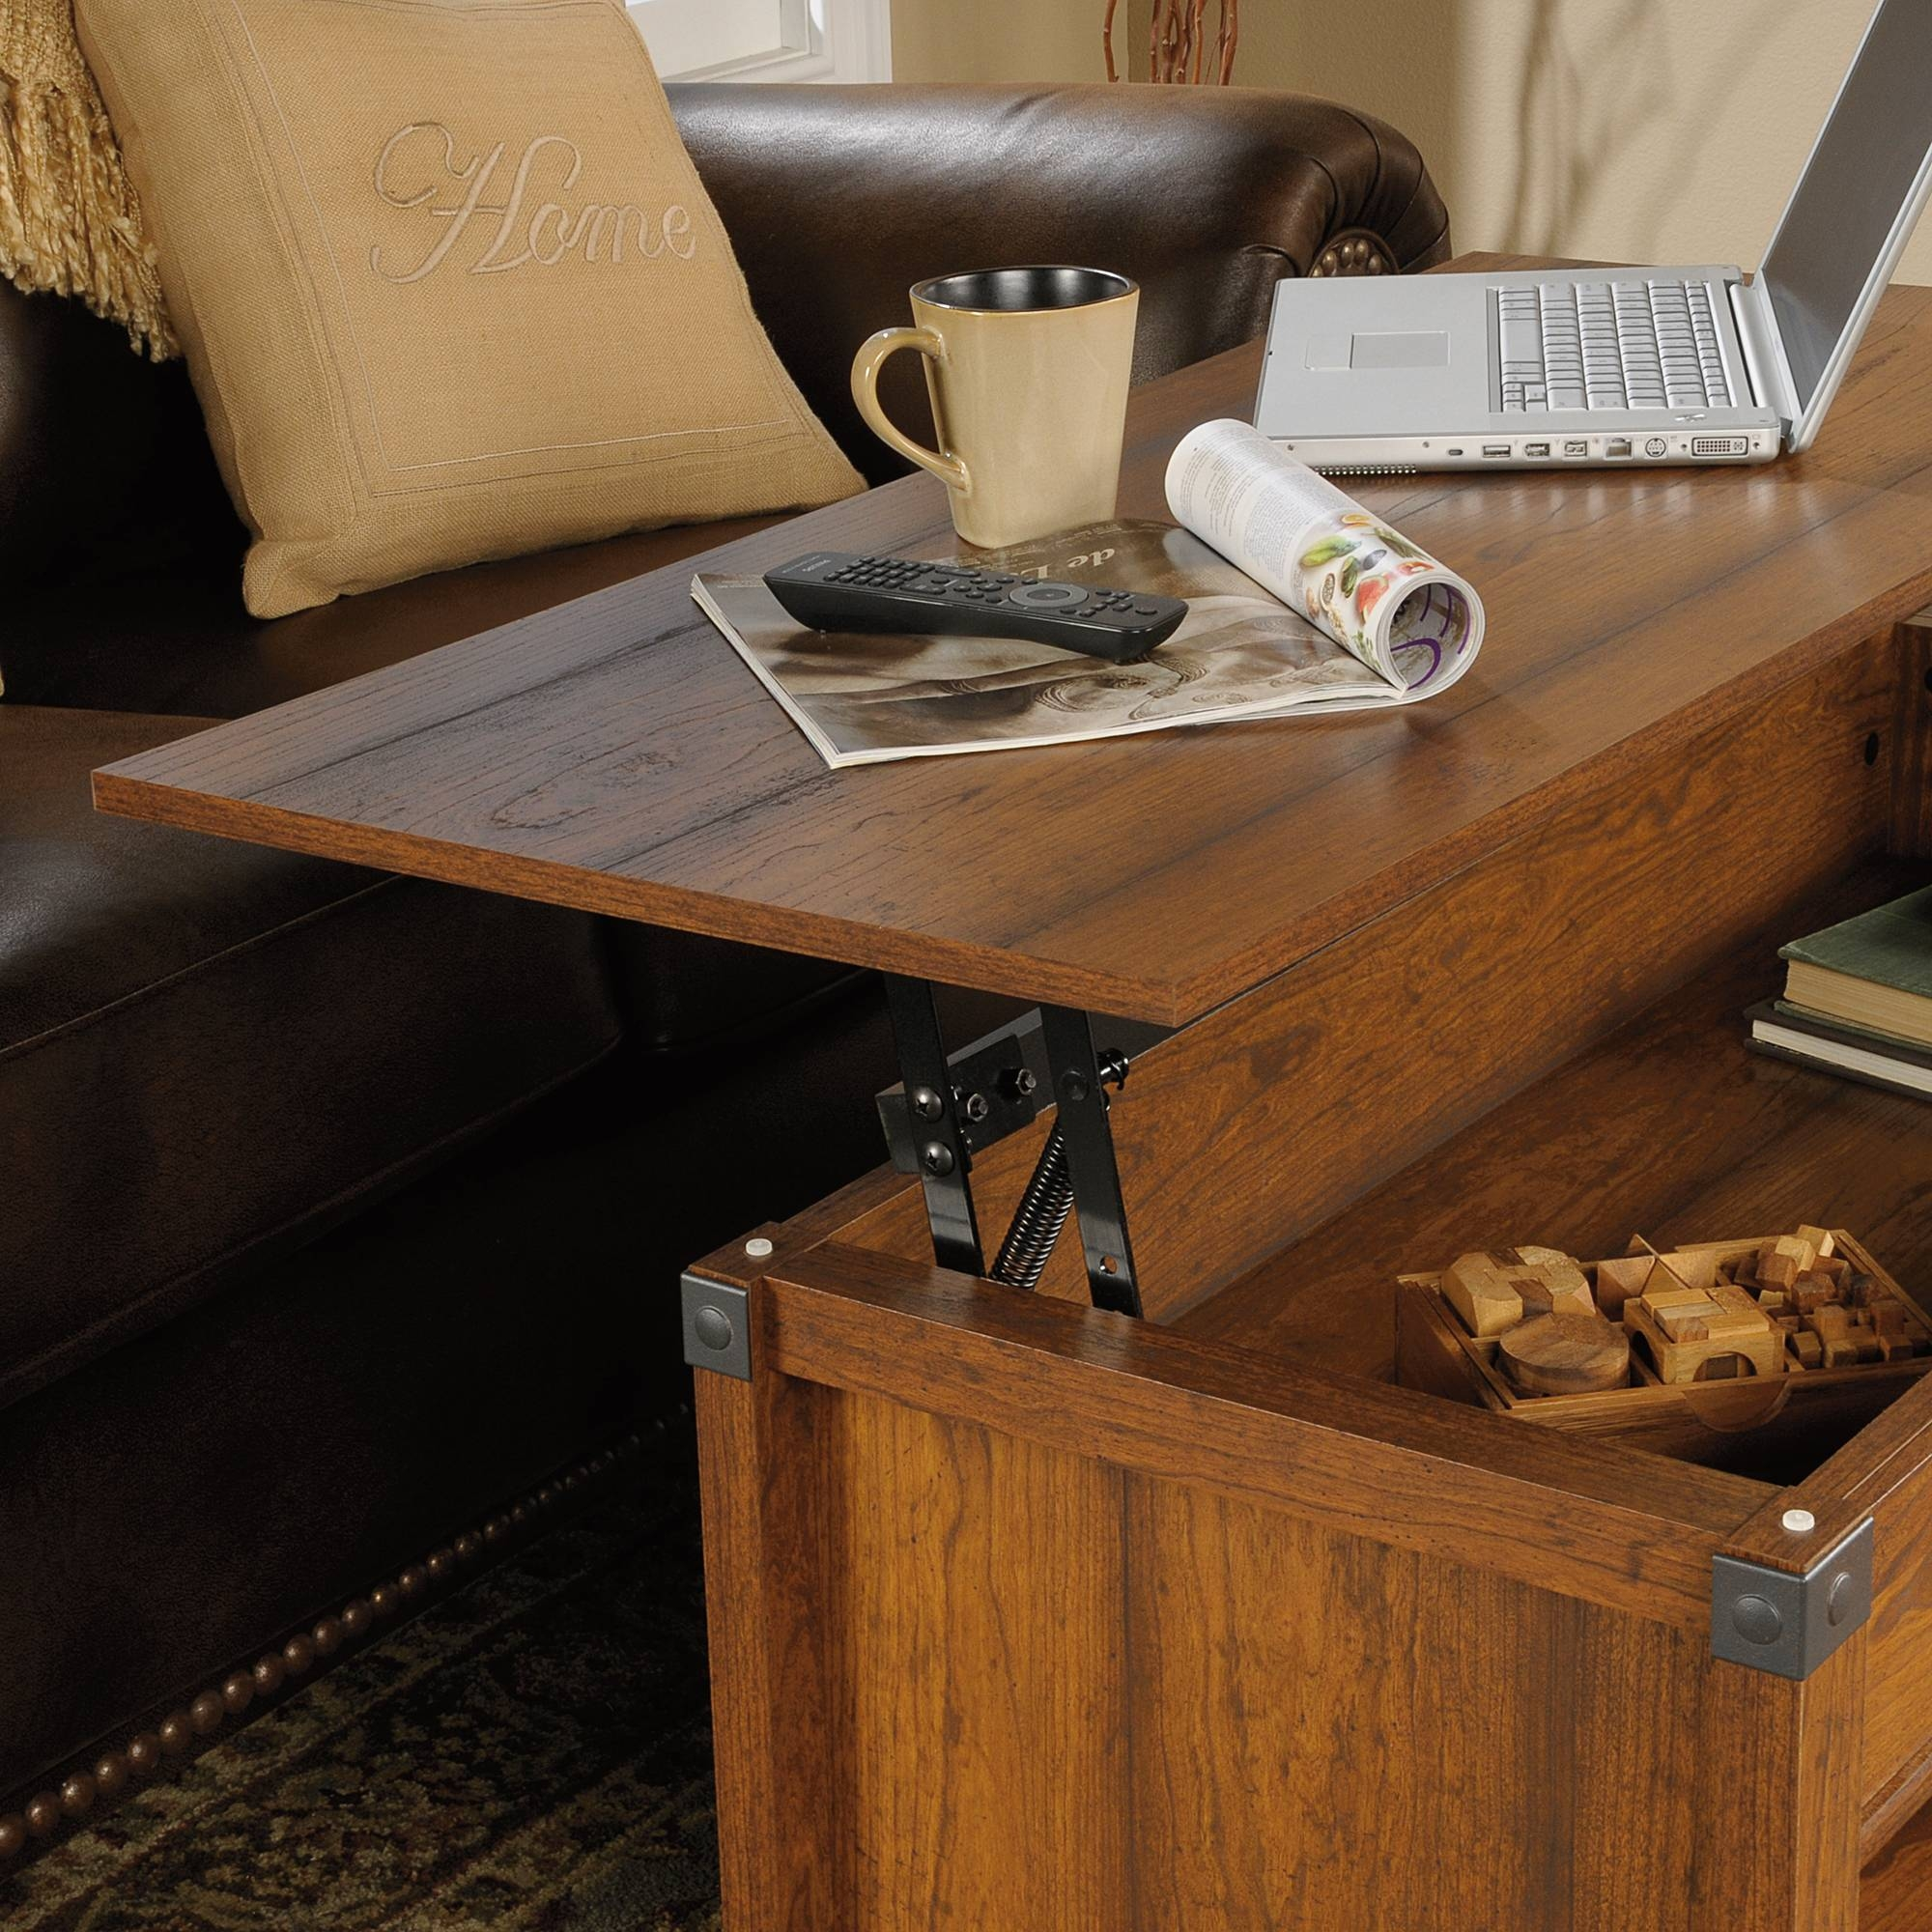 Carson Forge | Lift-Top Coffee Table | 414444 | Sauder pertaining to Lift Coffee Tables (Image 5 of 30)